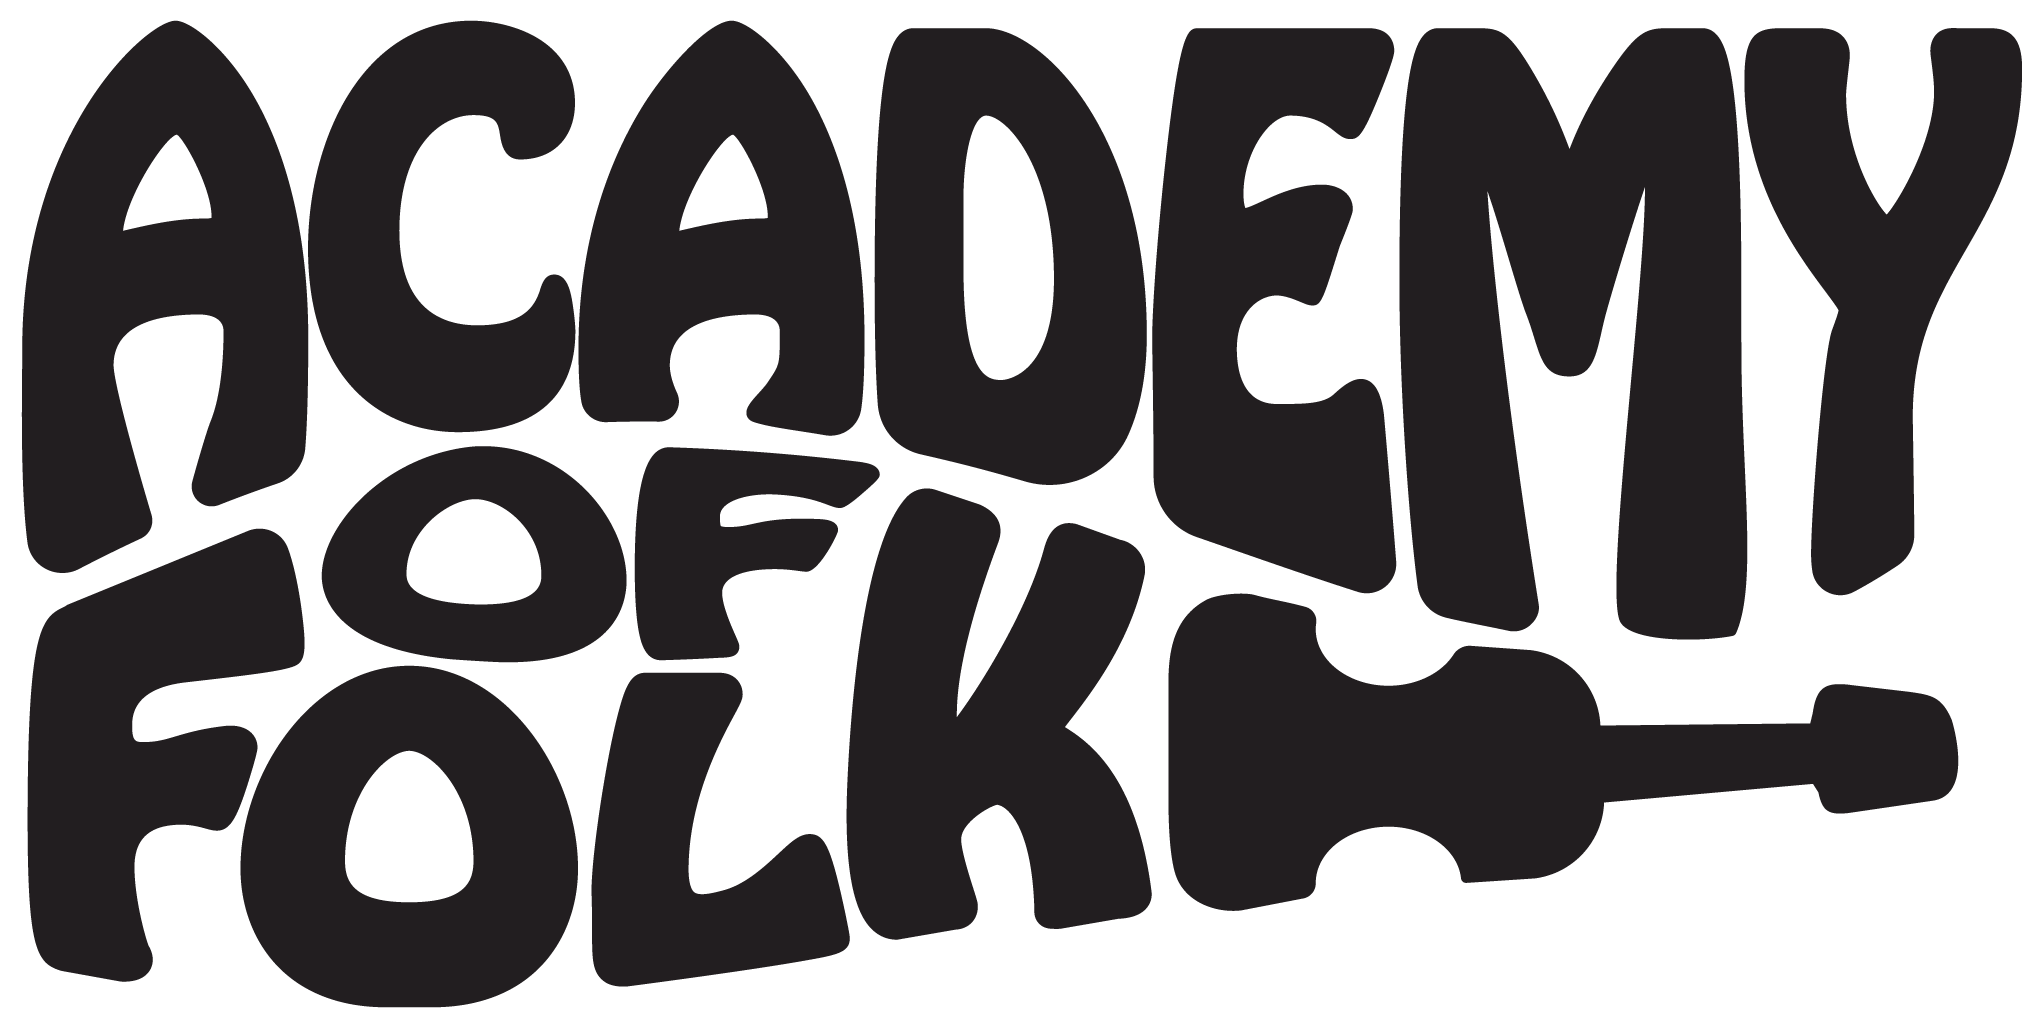 Academy of Folk